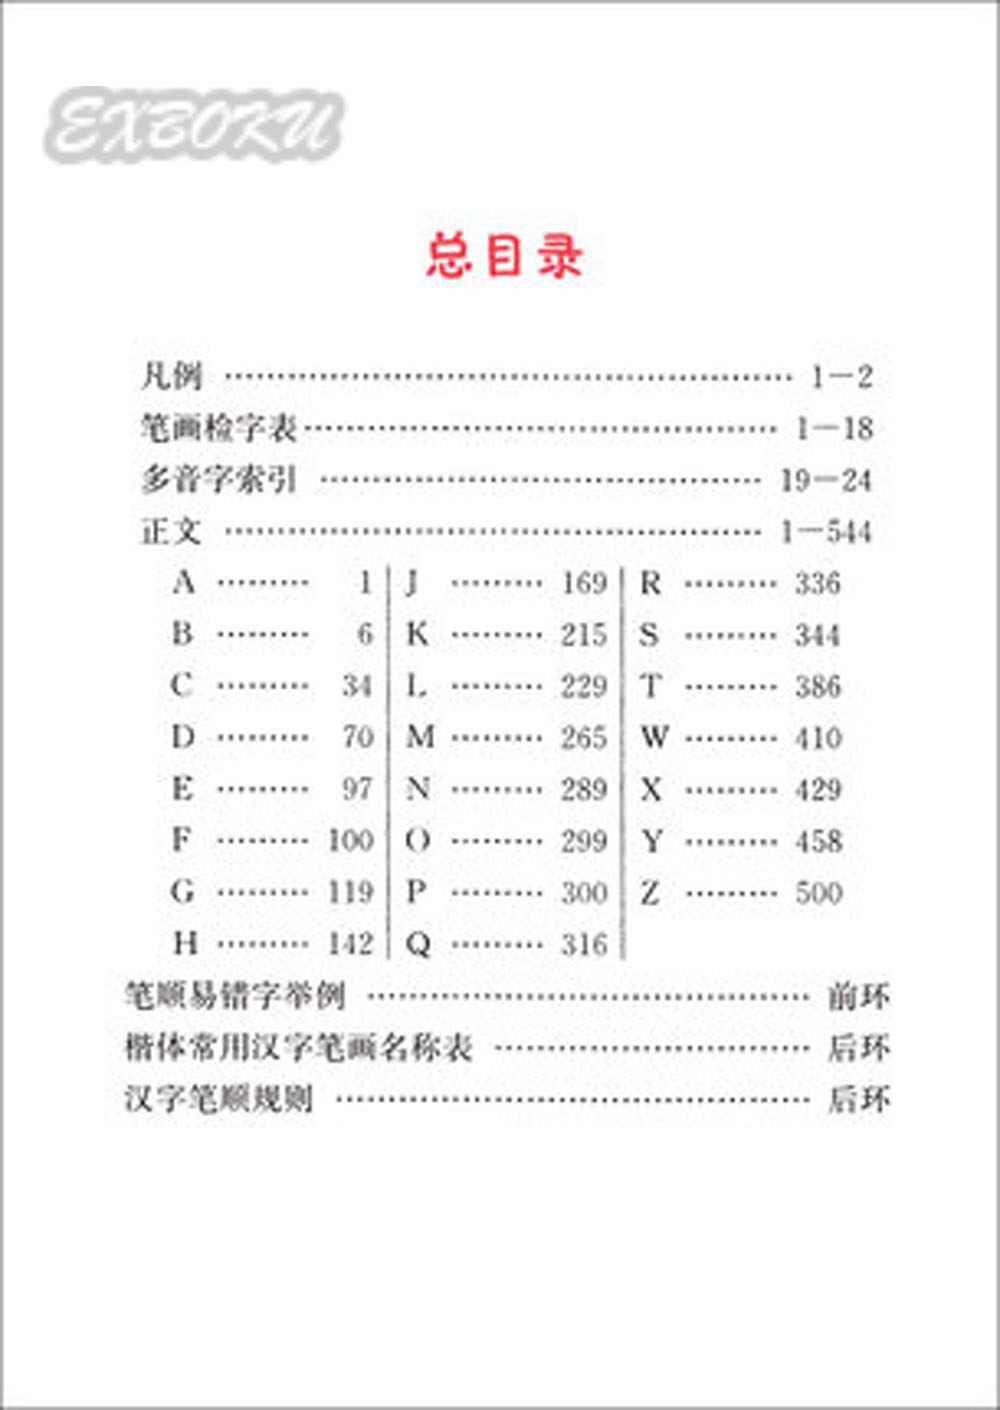 Office & School Supp. ... Books ... 32458562643 ... 2 ... Chinese Stroke dictionary with 2500 common characters for learning pinyin making sentence Language educational tool Book ...